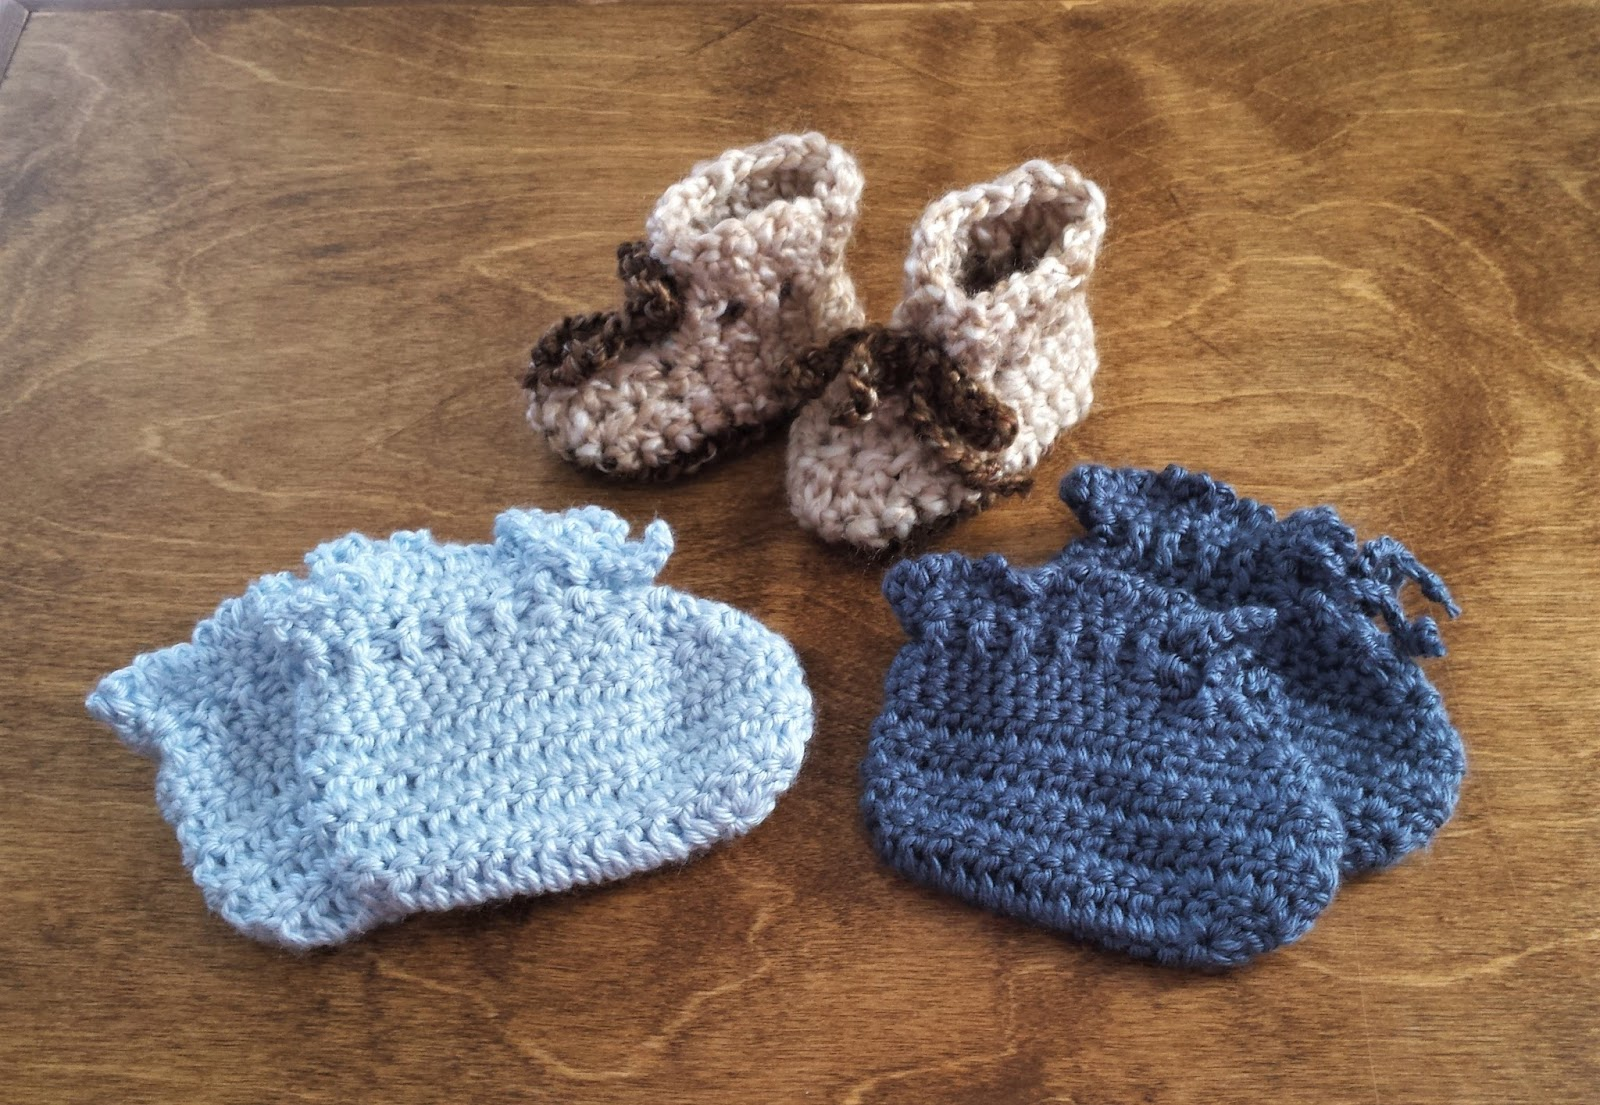 Cranberry Tea Time: Busy Hands: Hats and Shoes